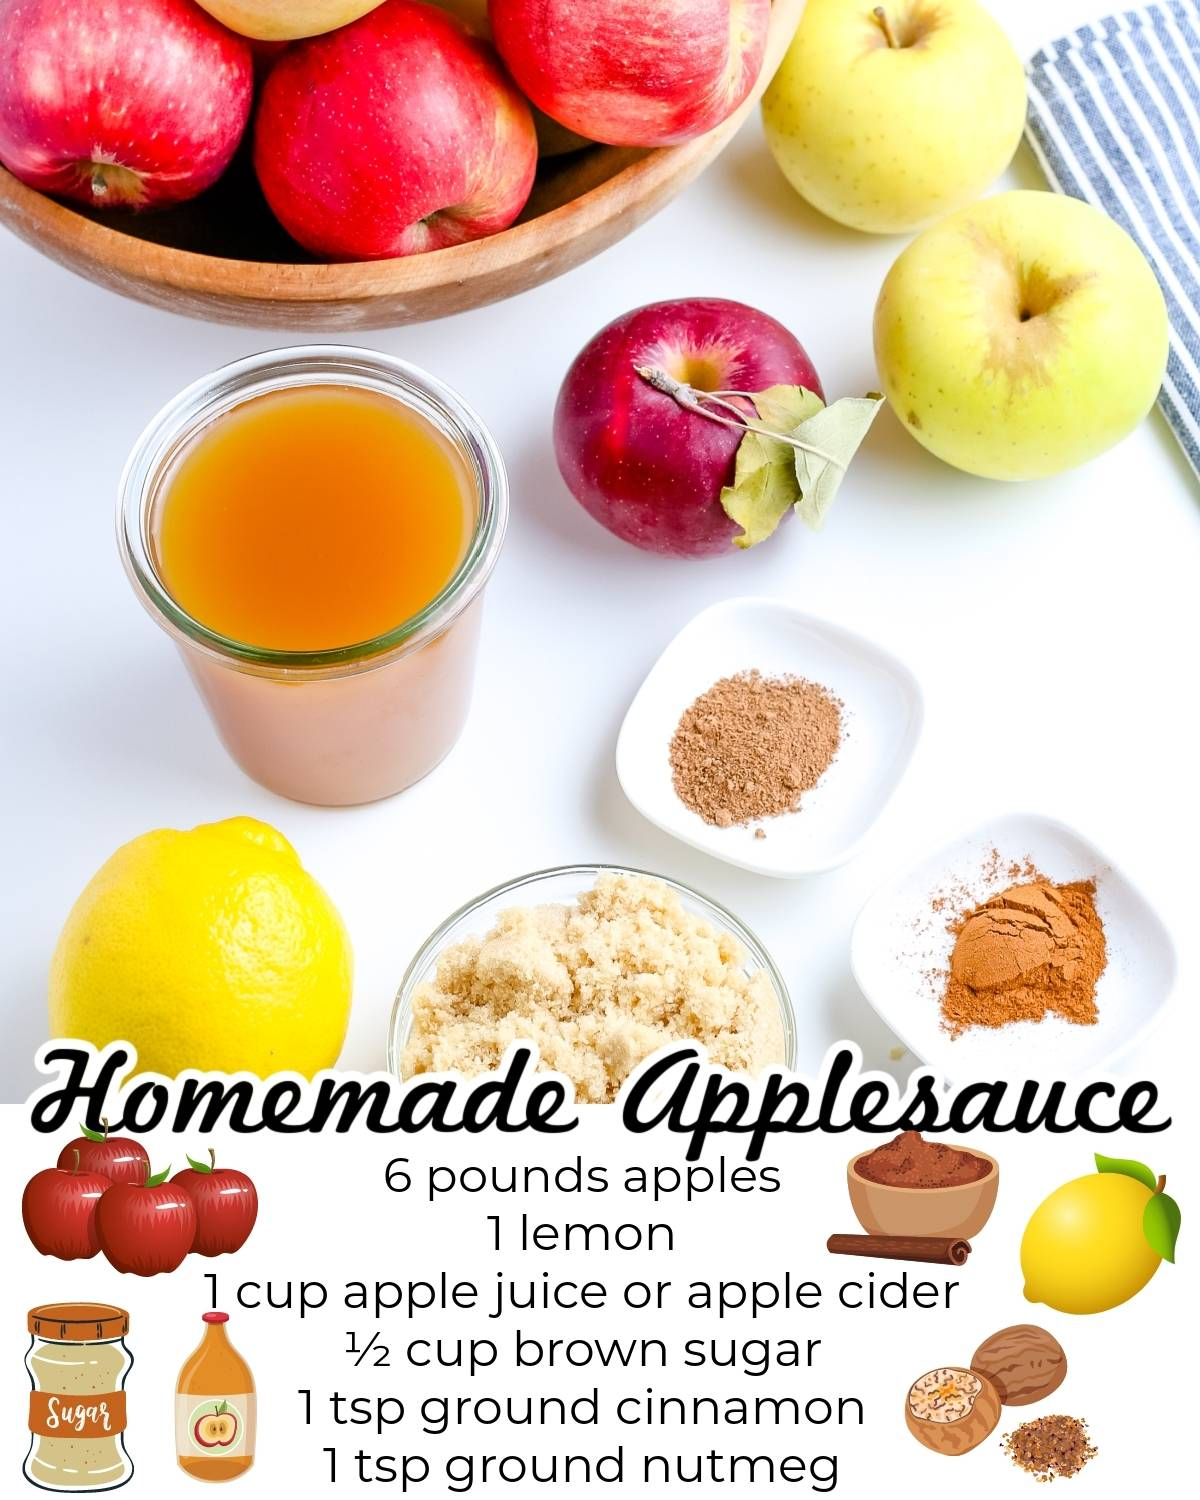 All of the ingredients needed to make this homemade applesauce recipe.